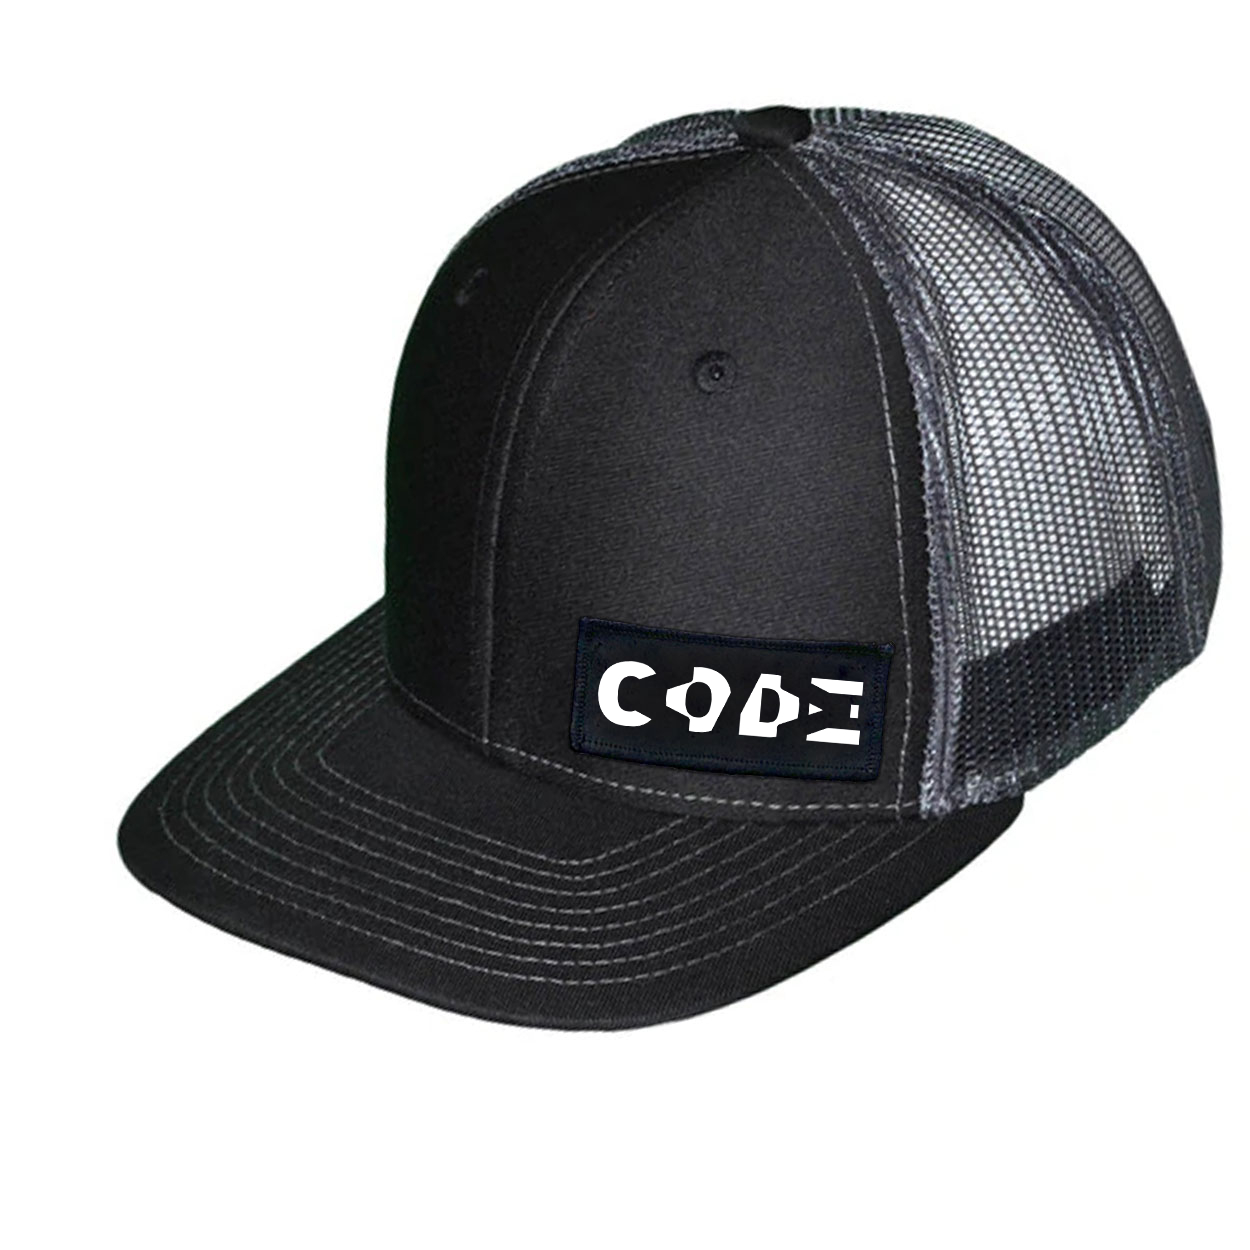 Code Tag Logo Night Out Woven Patch Snapback Trucker Hat Black/Dark Gray (White Logo)